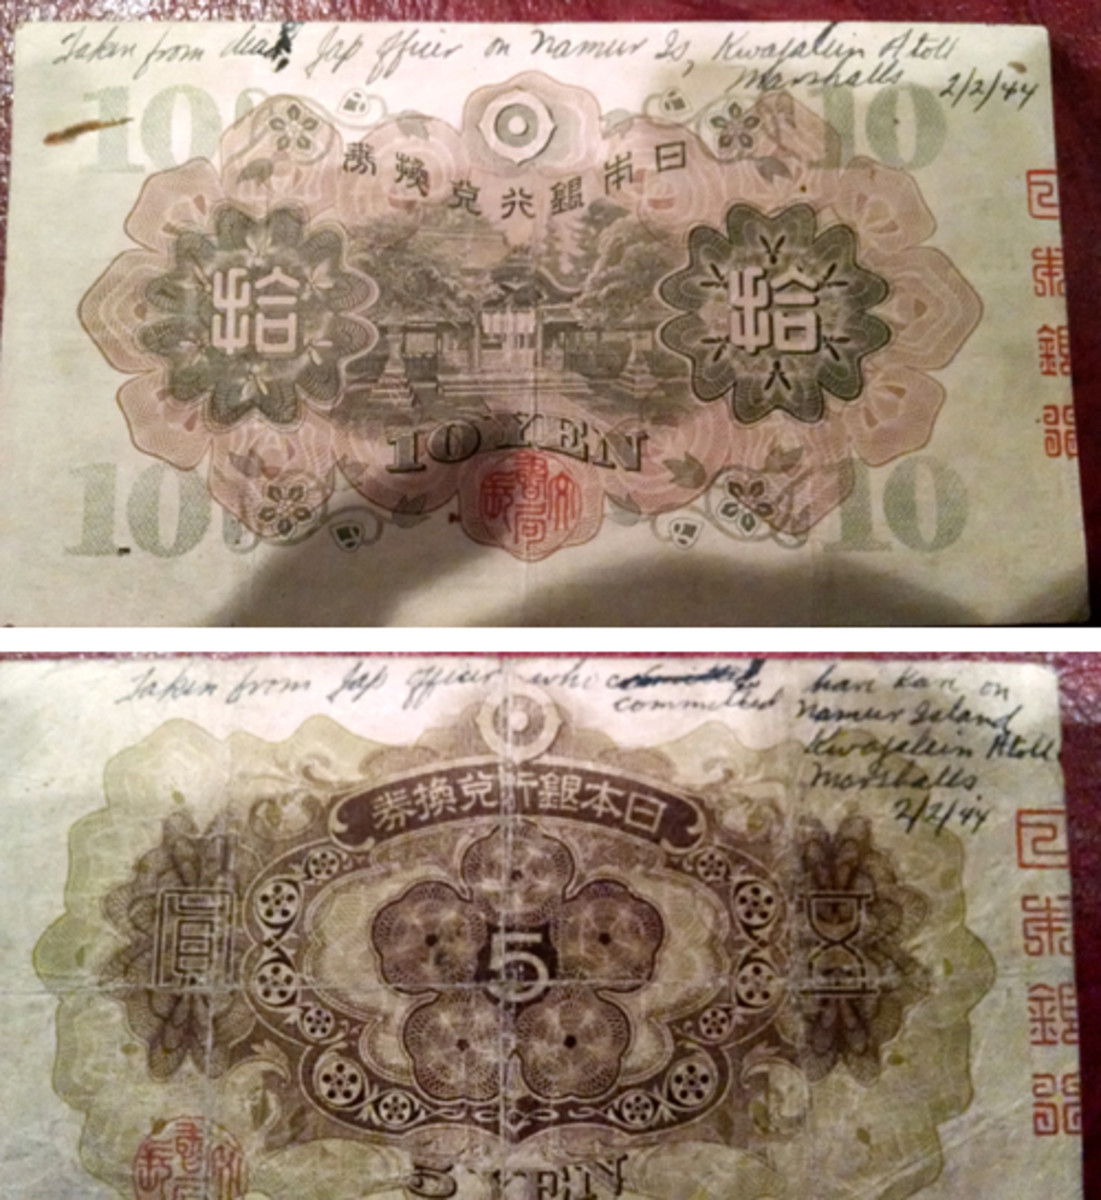 Fig. 3: This pair of Yen notes, 10 and 5, respectively, are Japanese Imperial Government notes, dating back to World War II. Each note bears a similar inscription that speaks to a Japanese soldier who committed a Japanese ritual suicide known as hari kari.